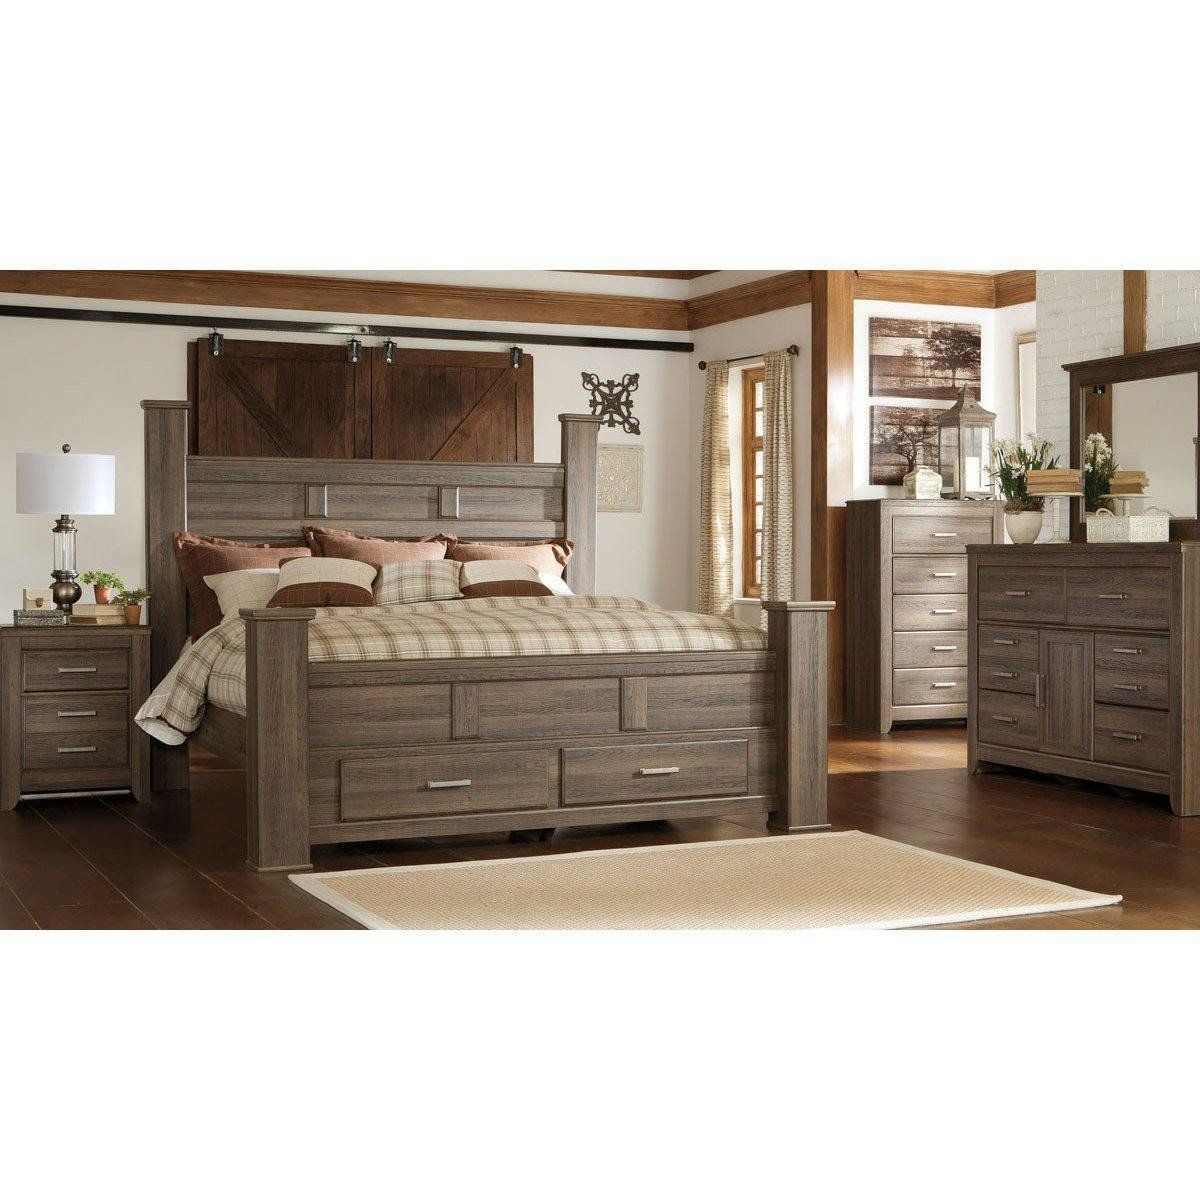 Jennifer Convertibles Bedroom Set Jaxson Storage Bedroom Set in